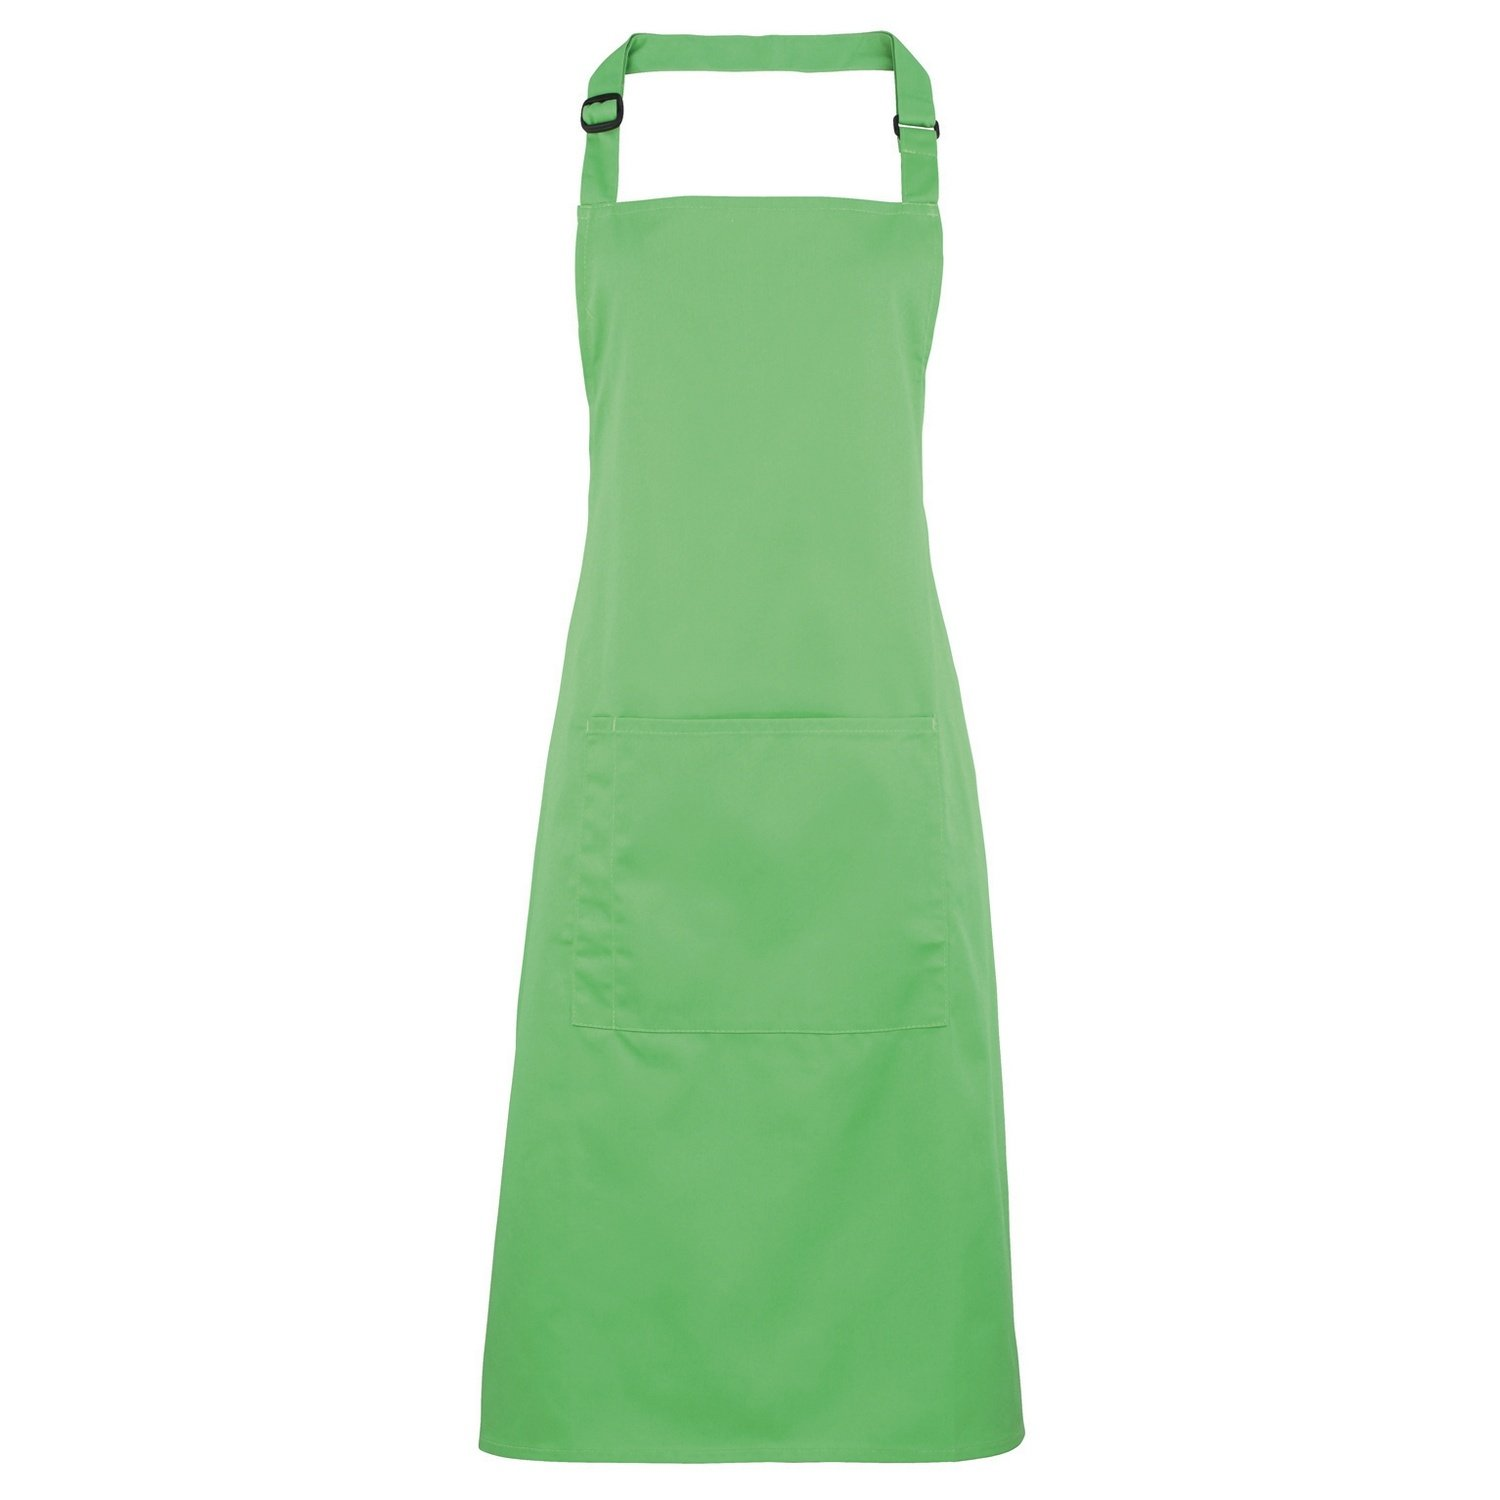 Premier Ladies/Womens Colours Bip Apron With Pocket / Workwear (One Size) (Light Blue) PRE-577